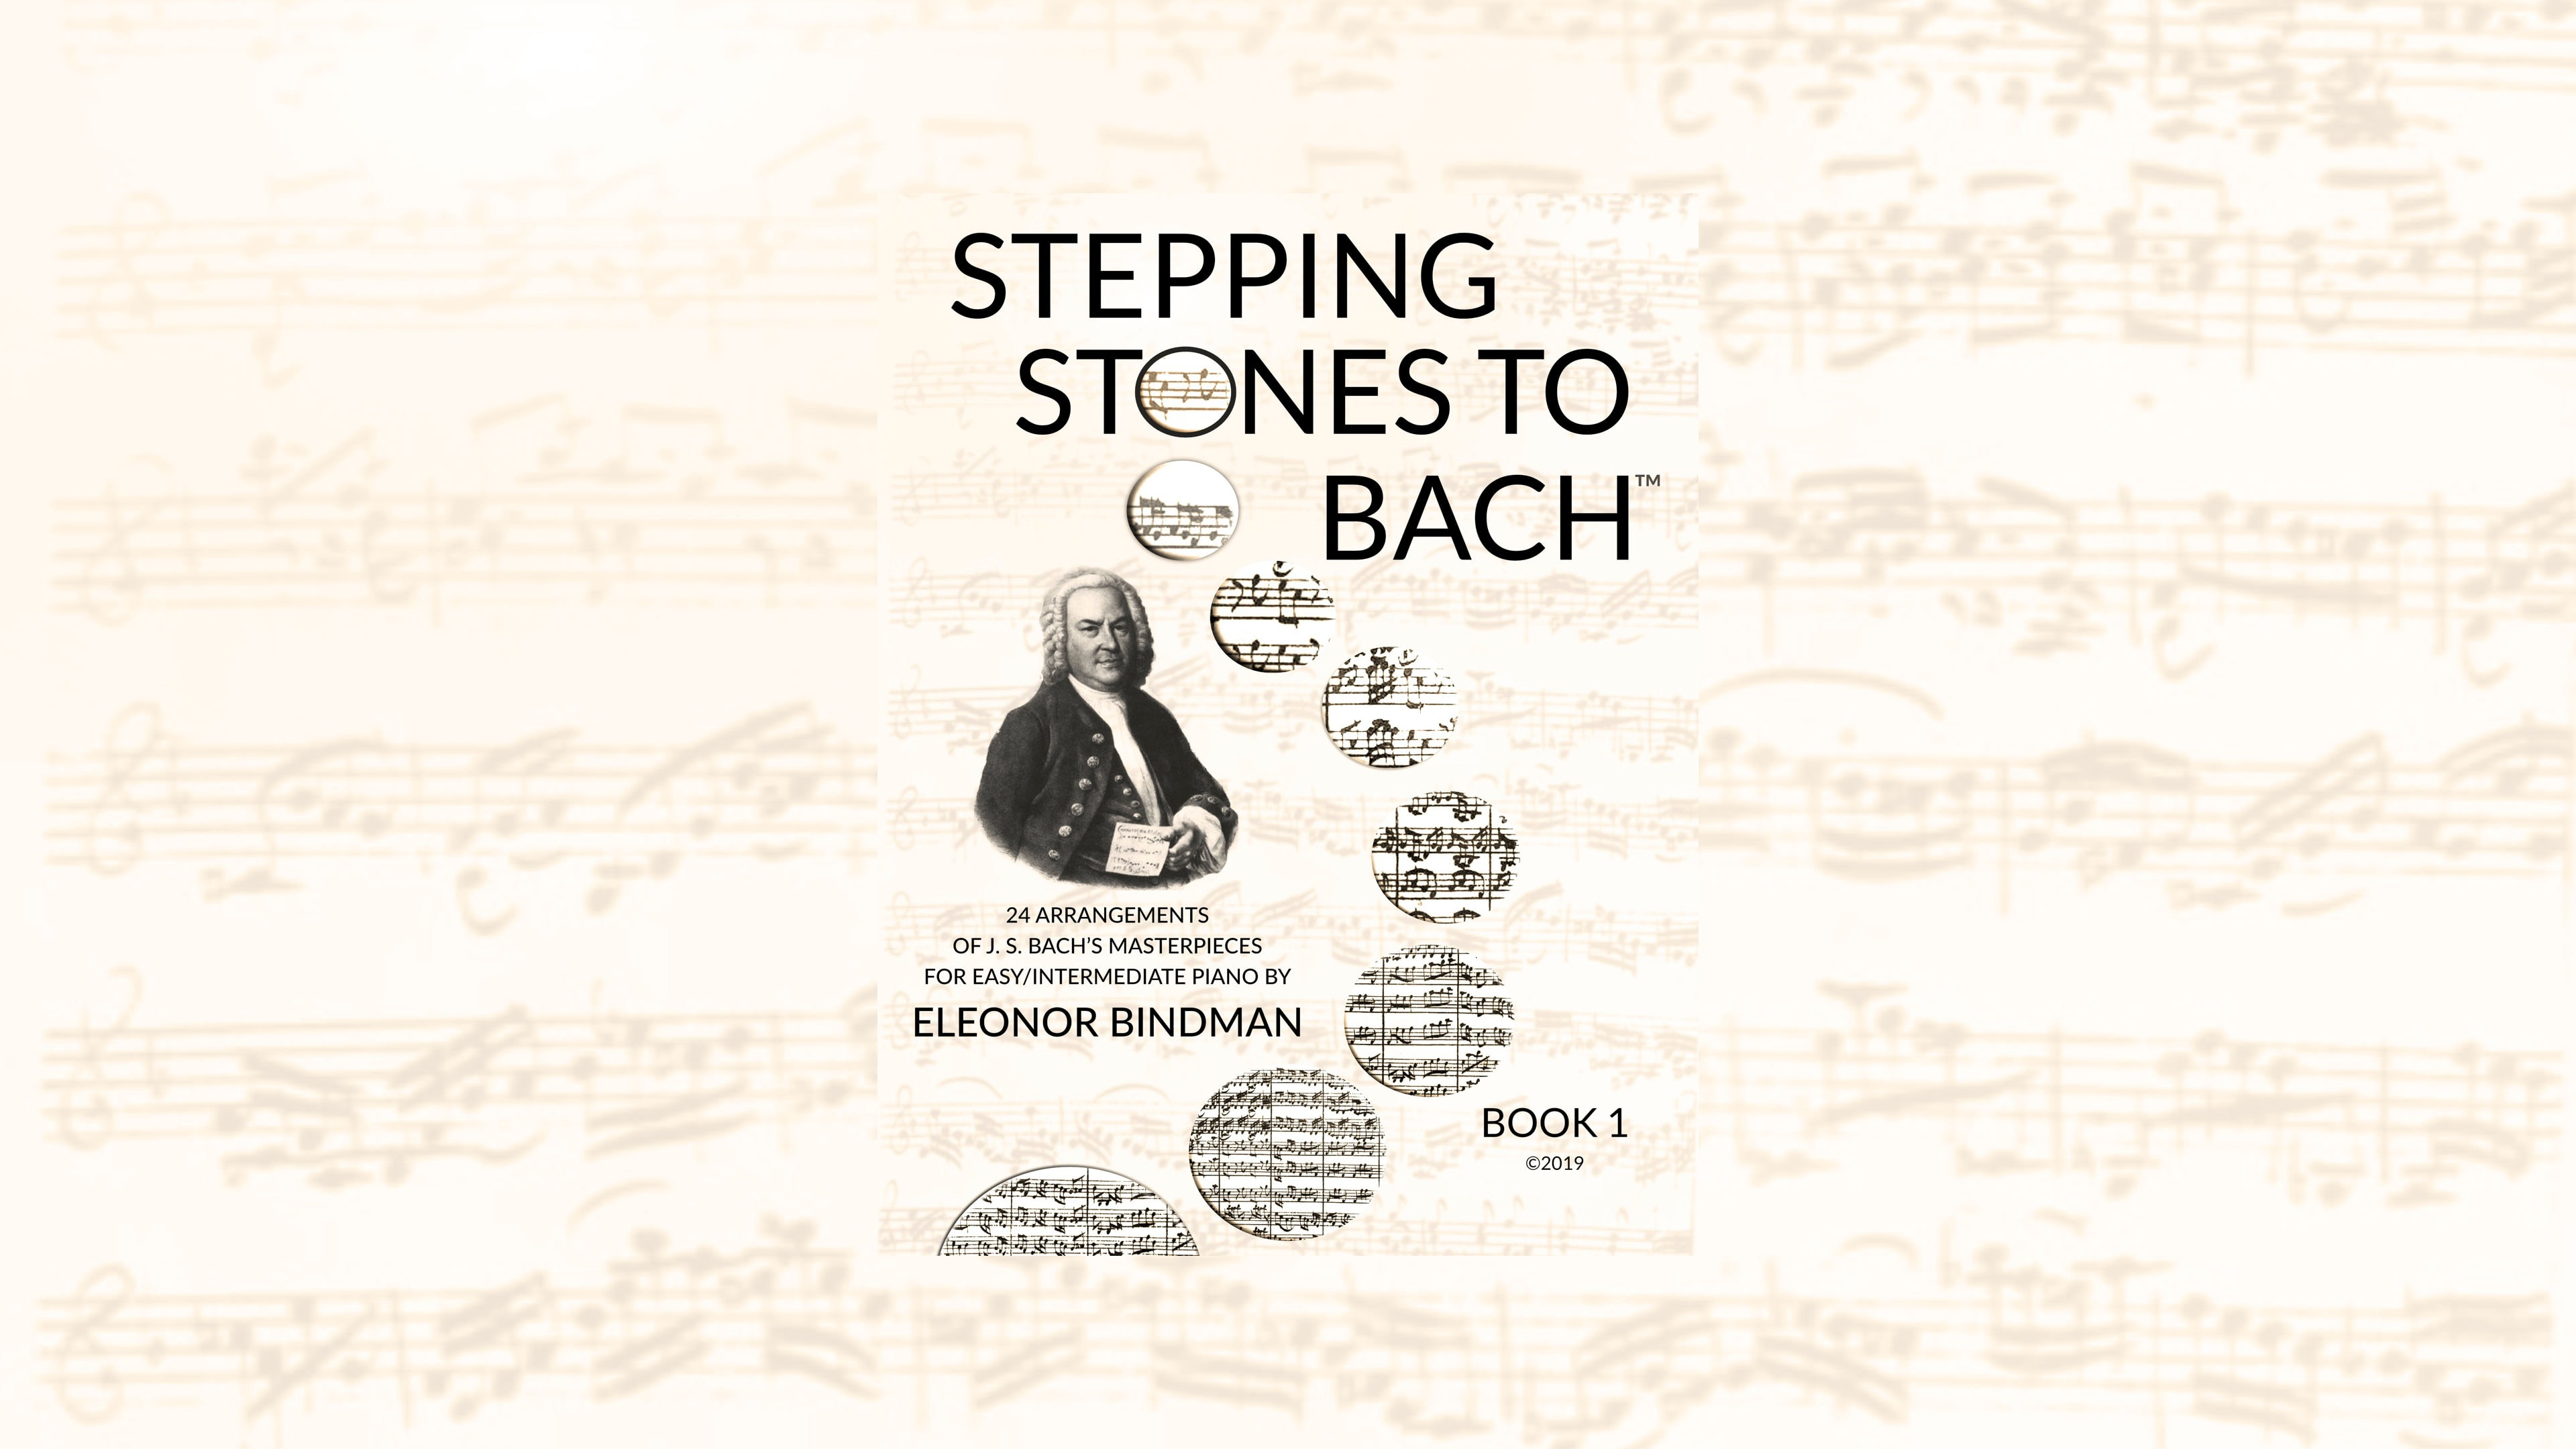 Stepping Stones to Bach Book